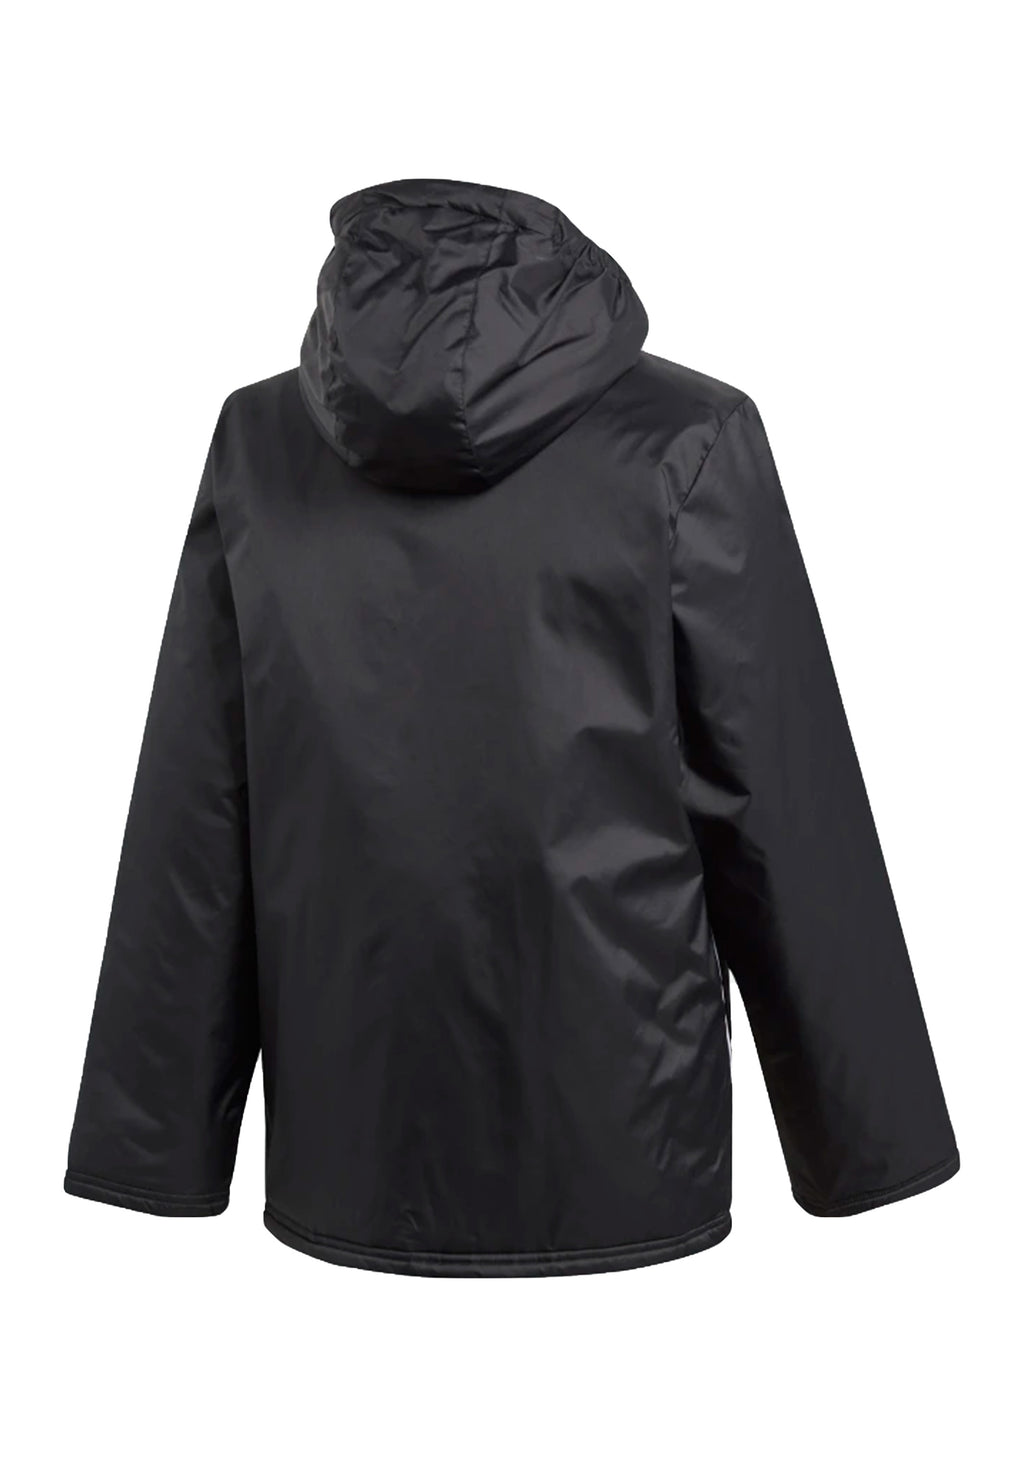 ADIDAS JUNIOR CORE 18 STADIUM JACKET BLACK <BR> CE9058